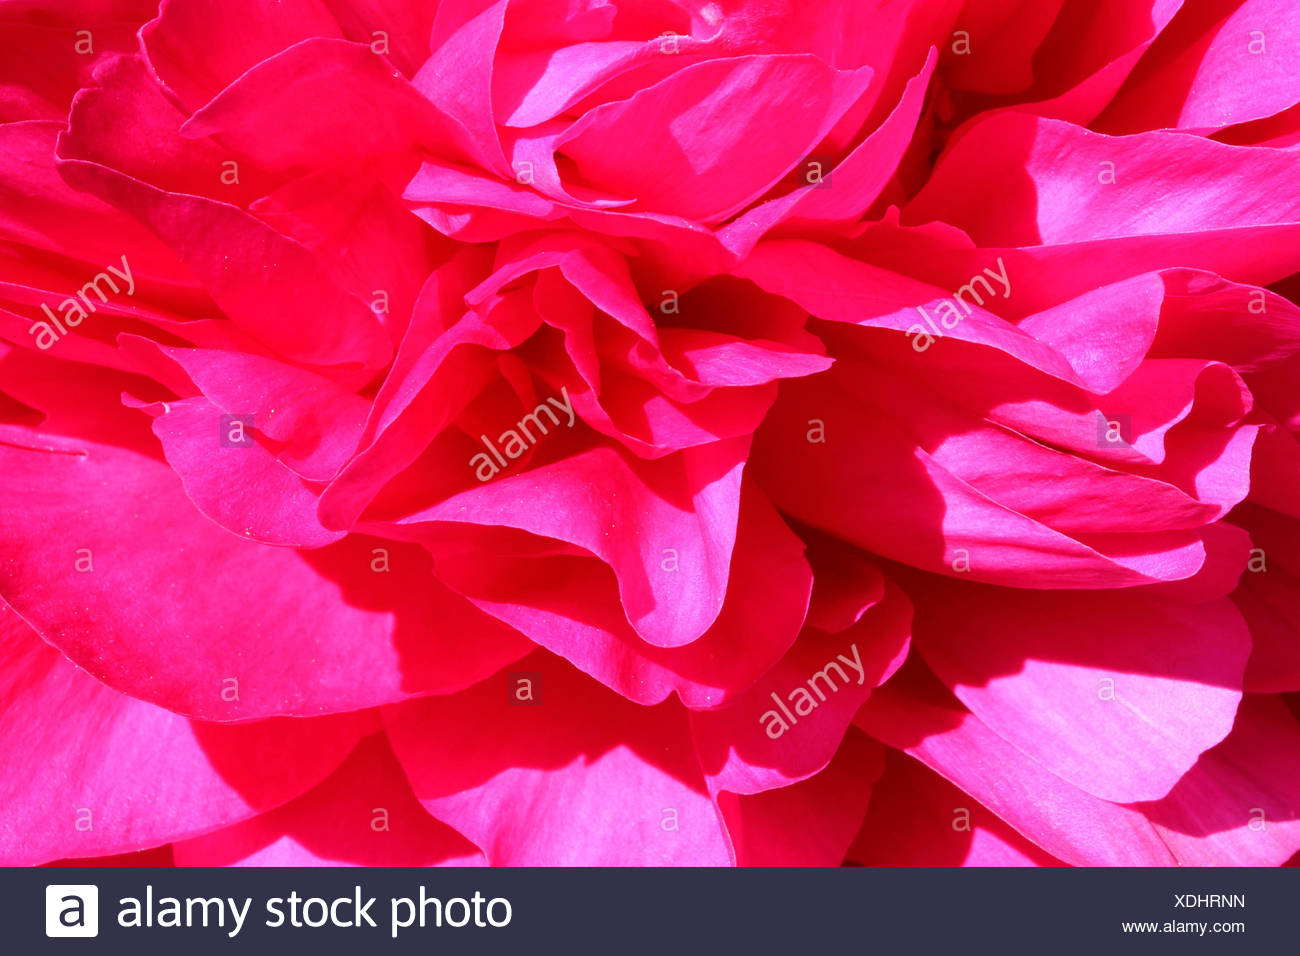 Peony, Paeonia, Close up pink coloured flower head giving an abtract effect. - Stock Image